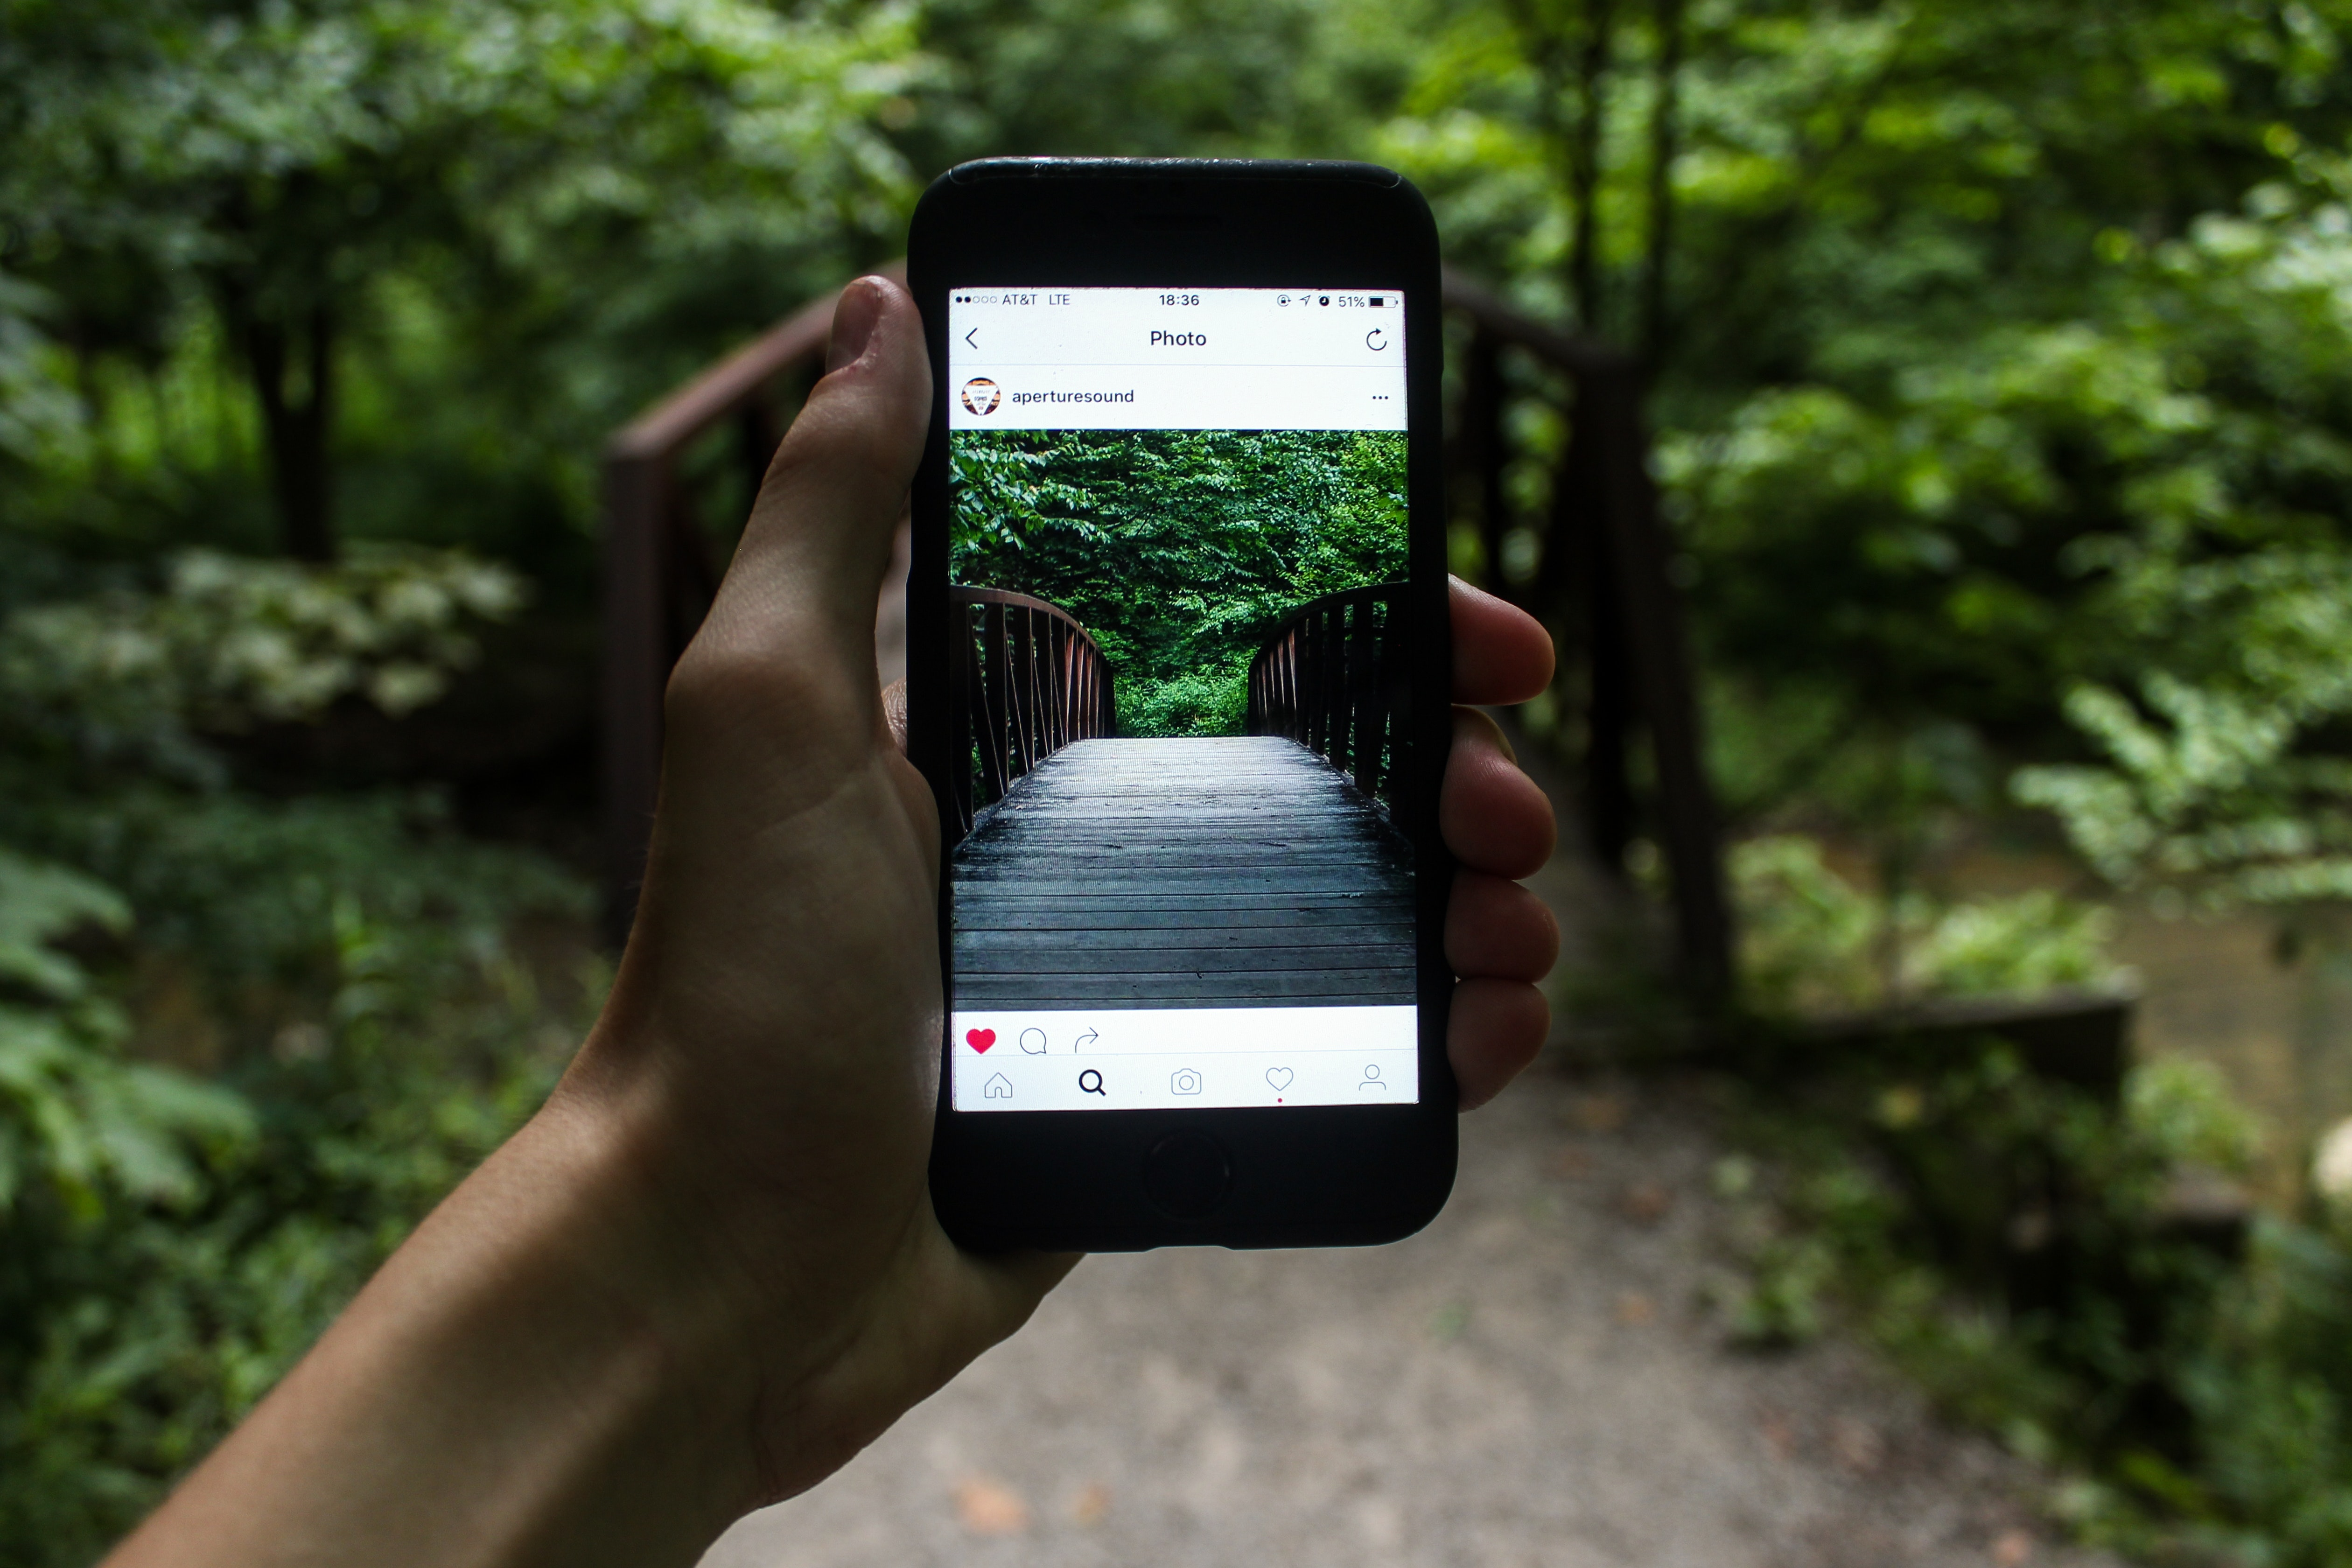 person-holding-smartphone-taking-picture-of-bridge-during-122383